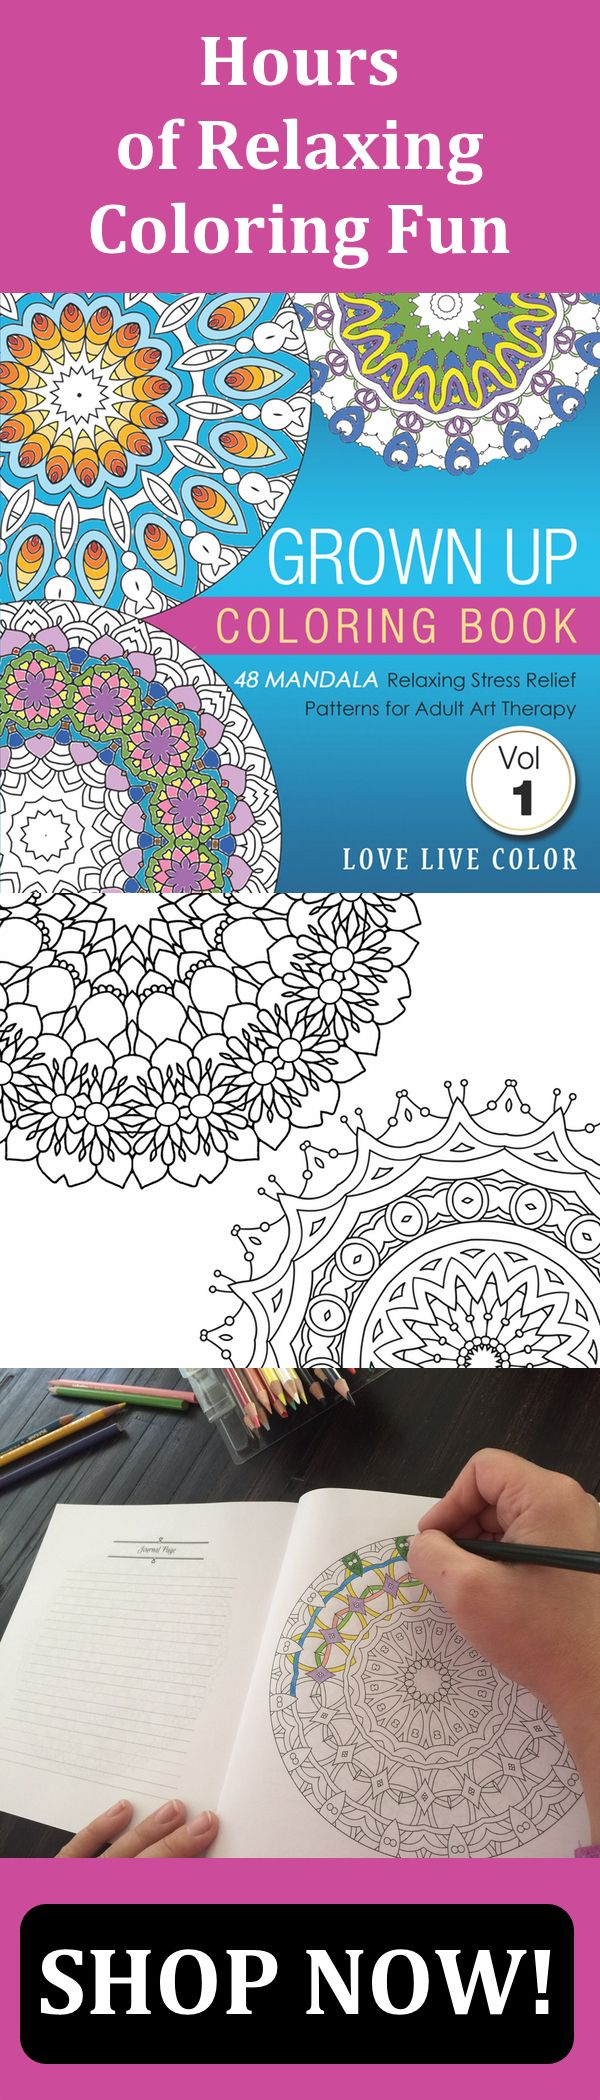 best doxiemoms have always loved coloring images on pinterest